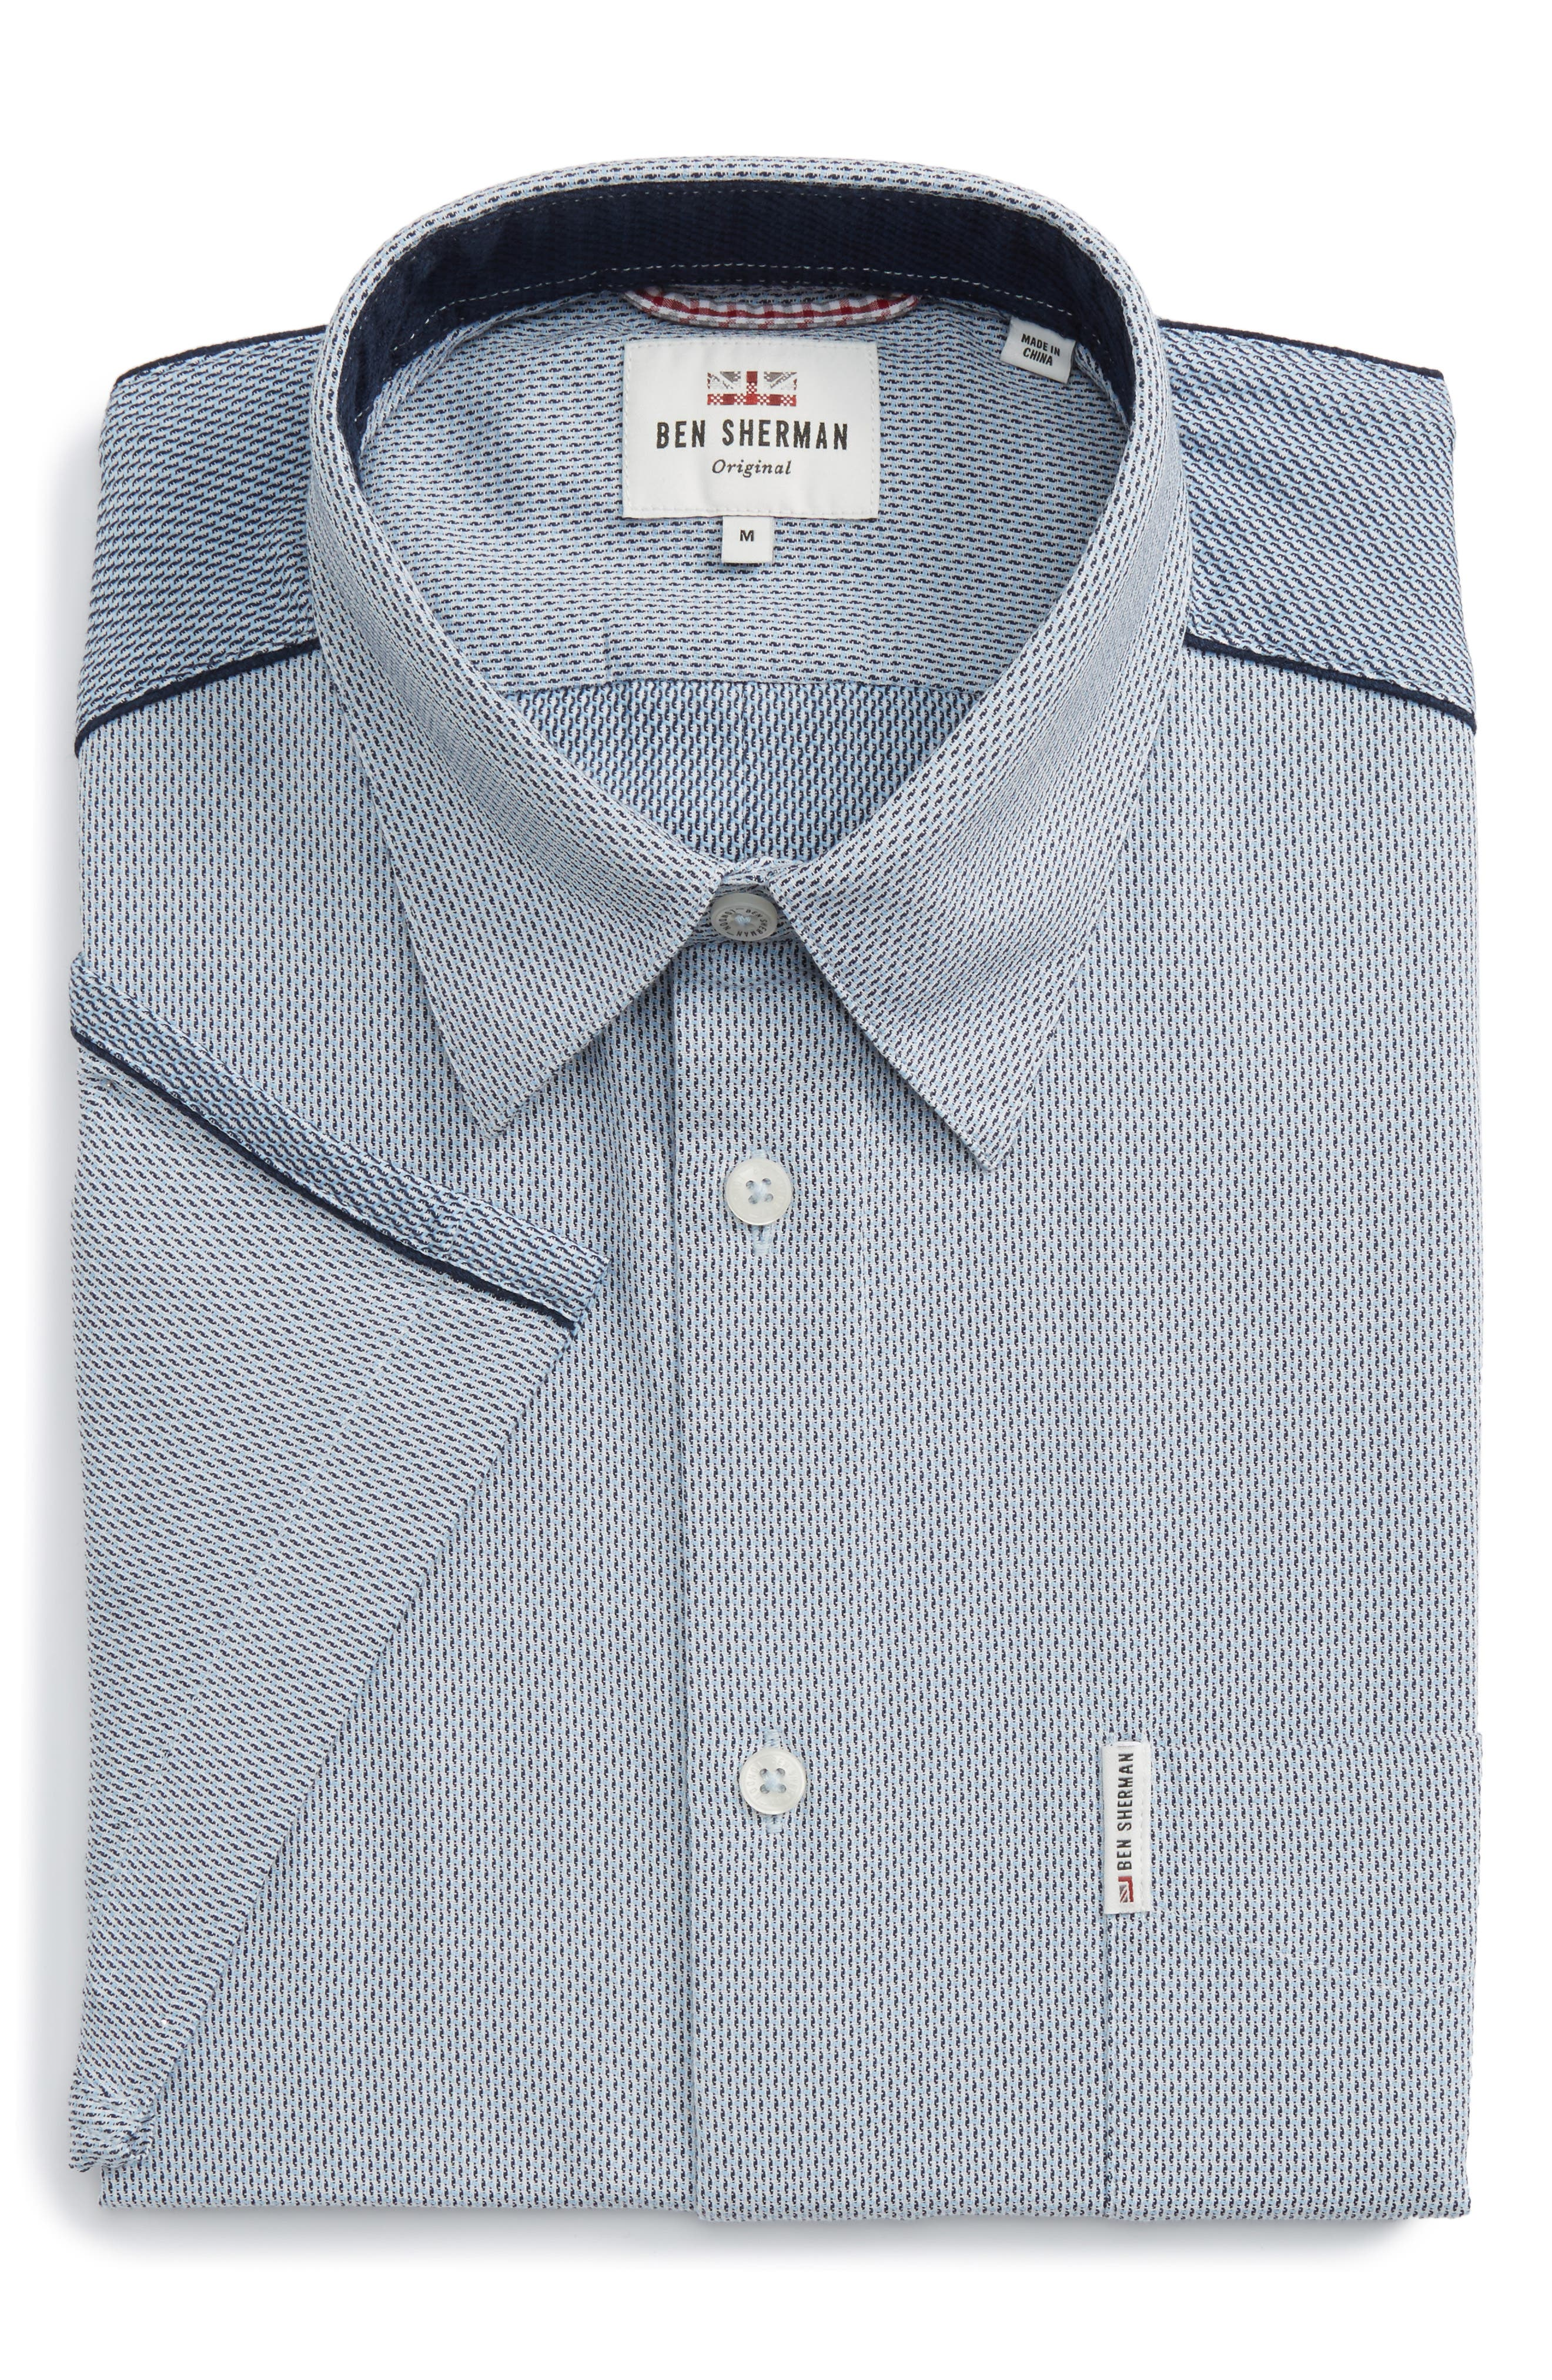 Ben Sherman Dobby Short Sleeve Shirt